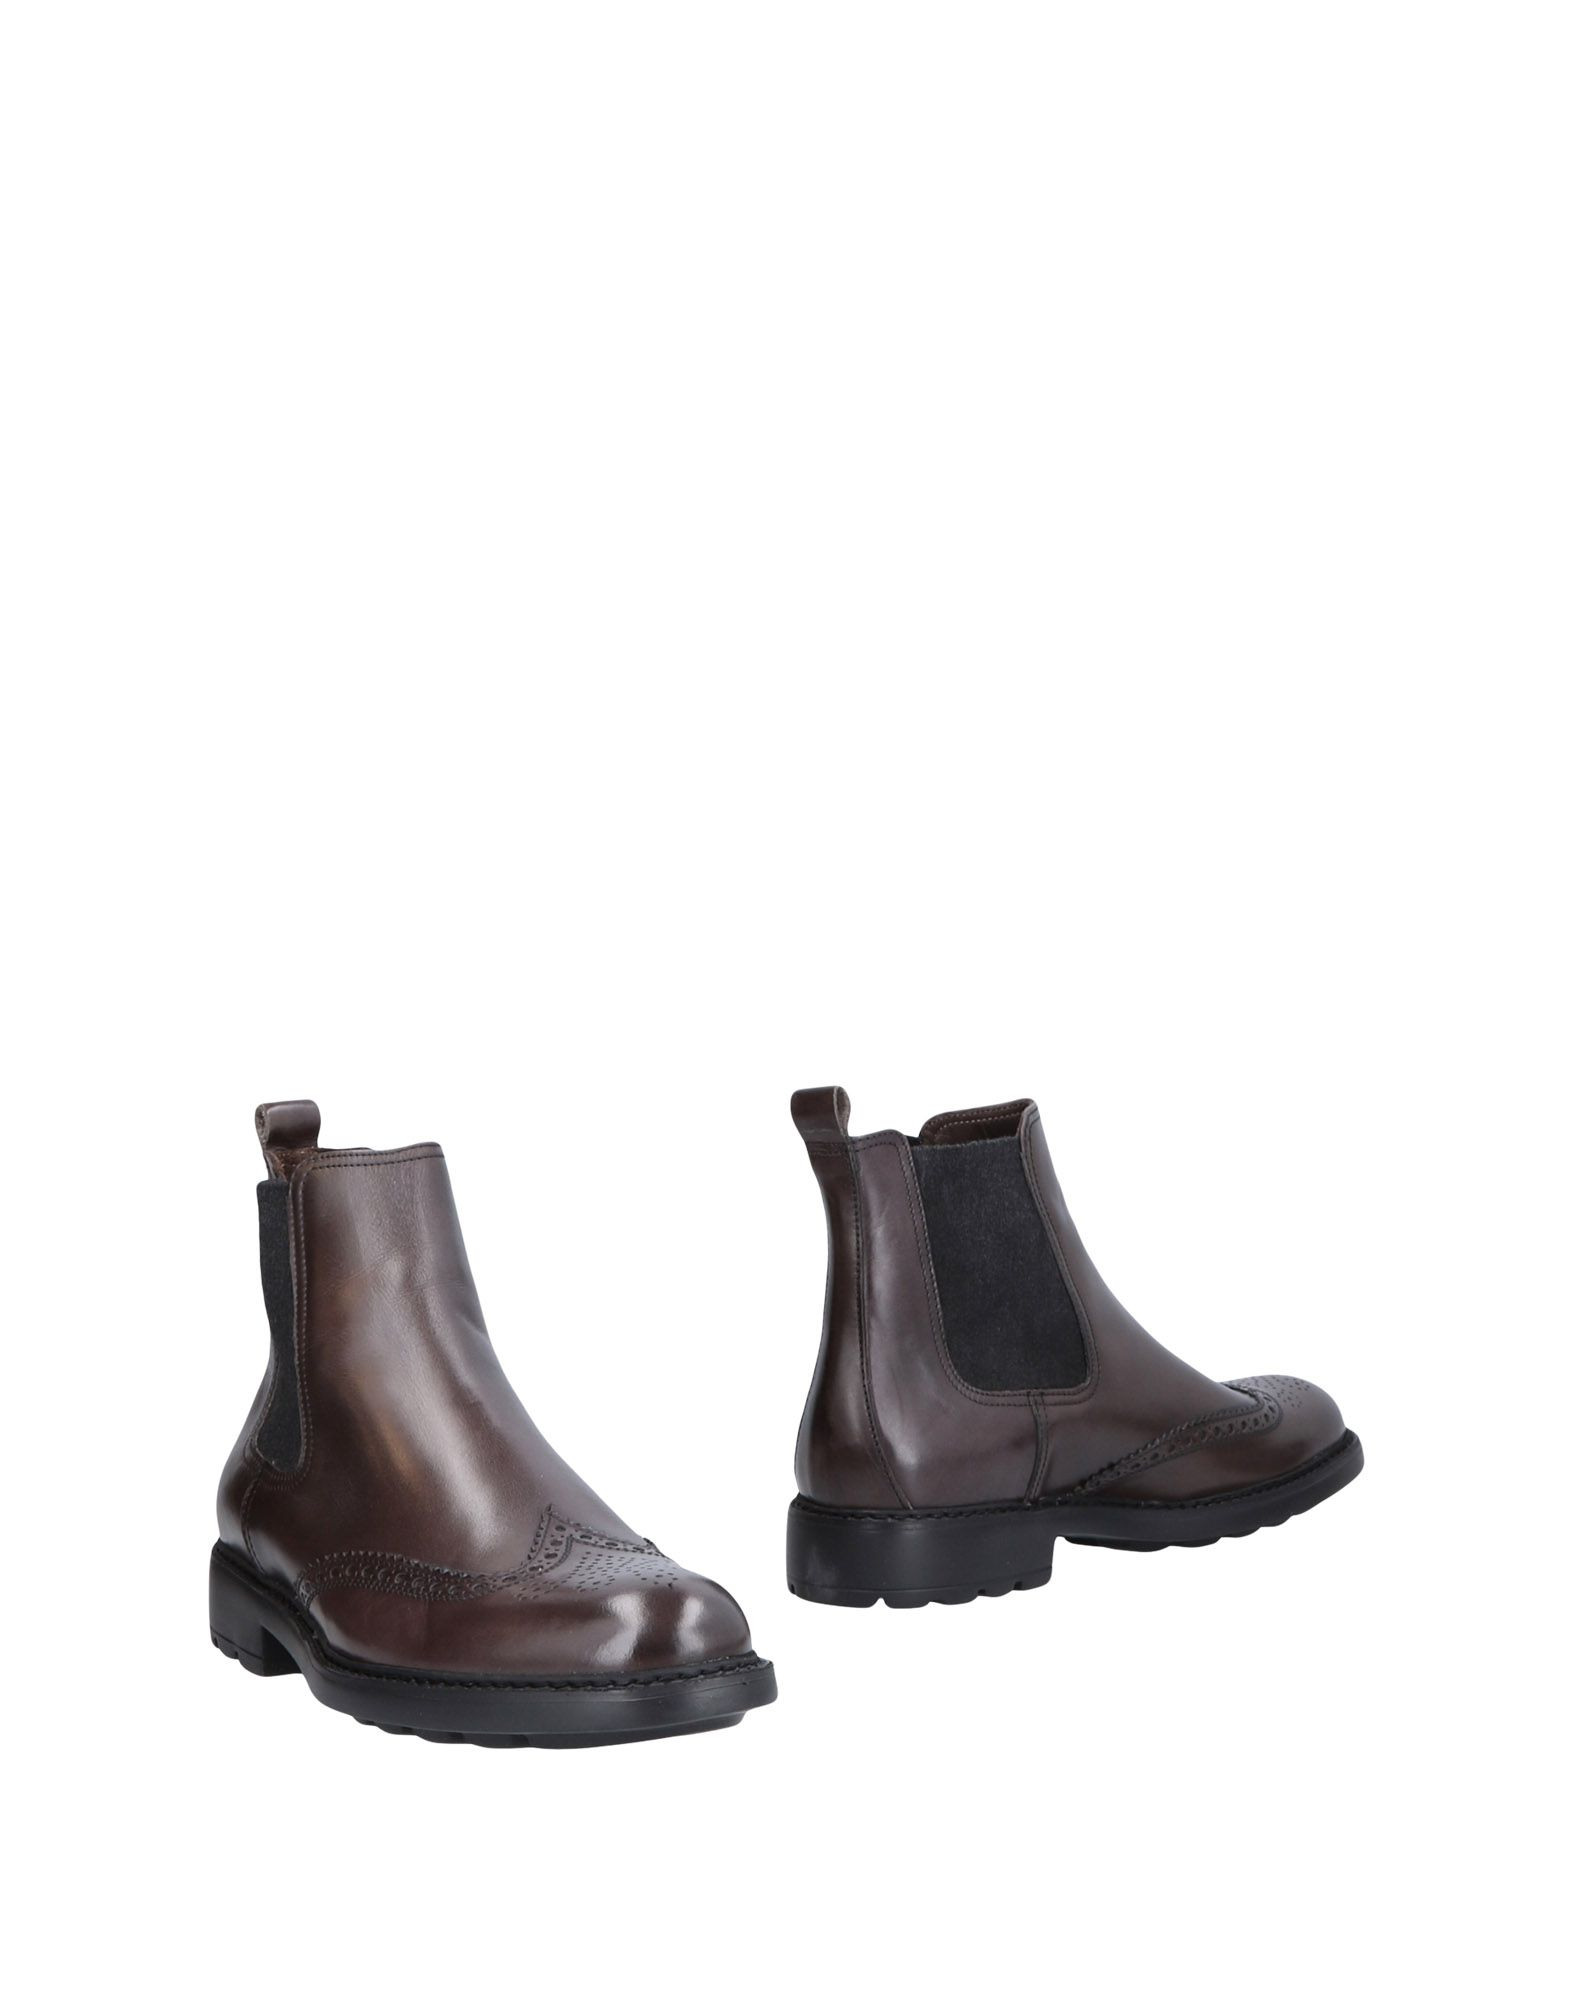 4914666487a Today By Calpierre Boots - - - Men Today By Calpierre Boots online on  Australia - 11460468WR 3a47ef